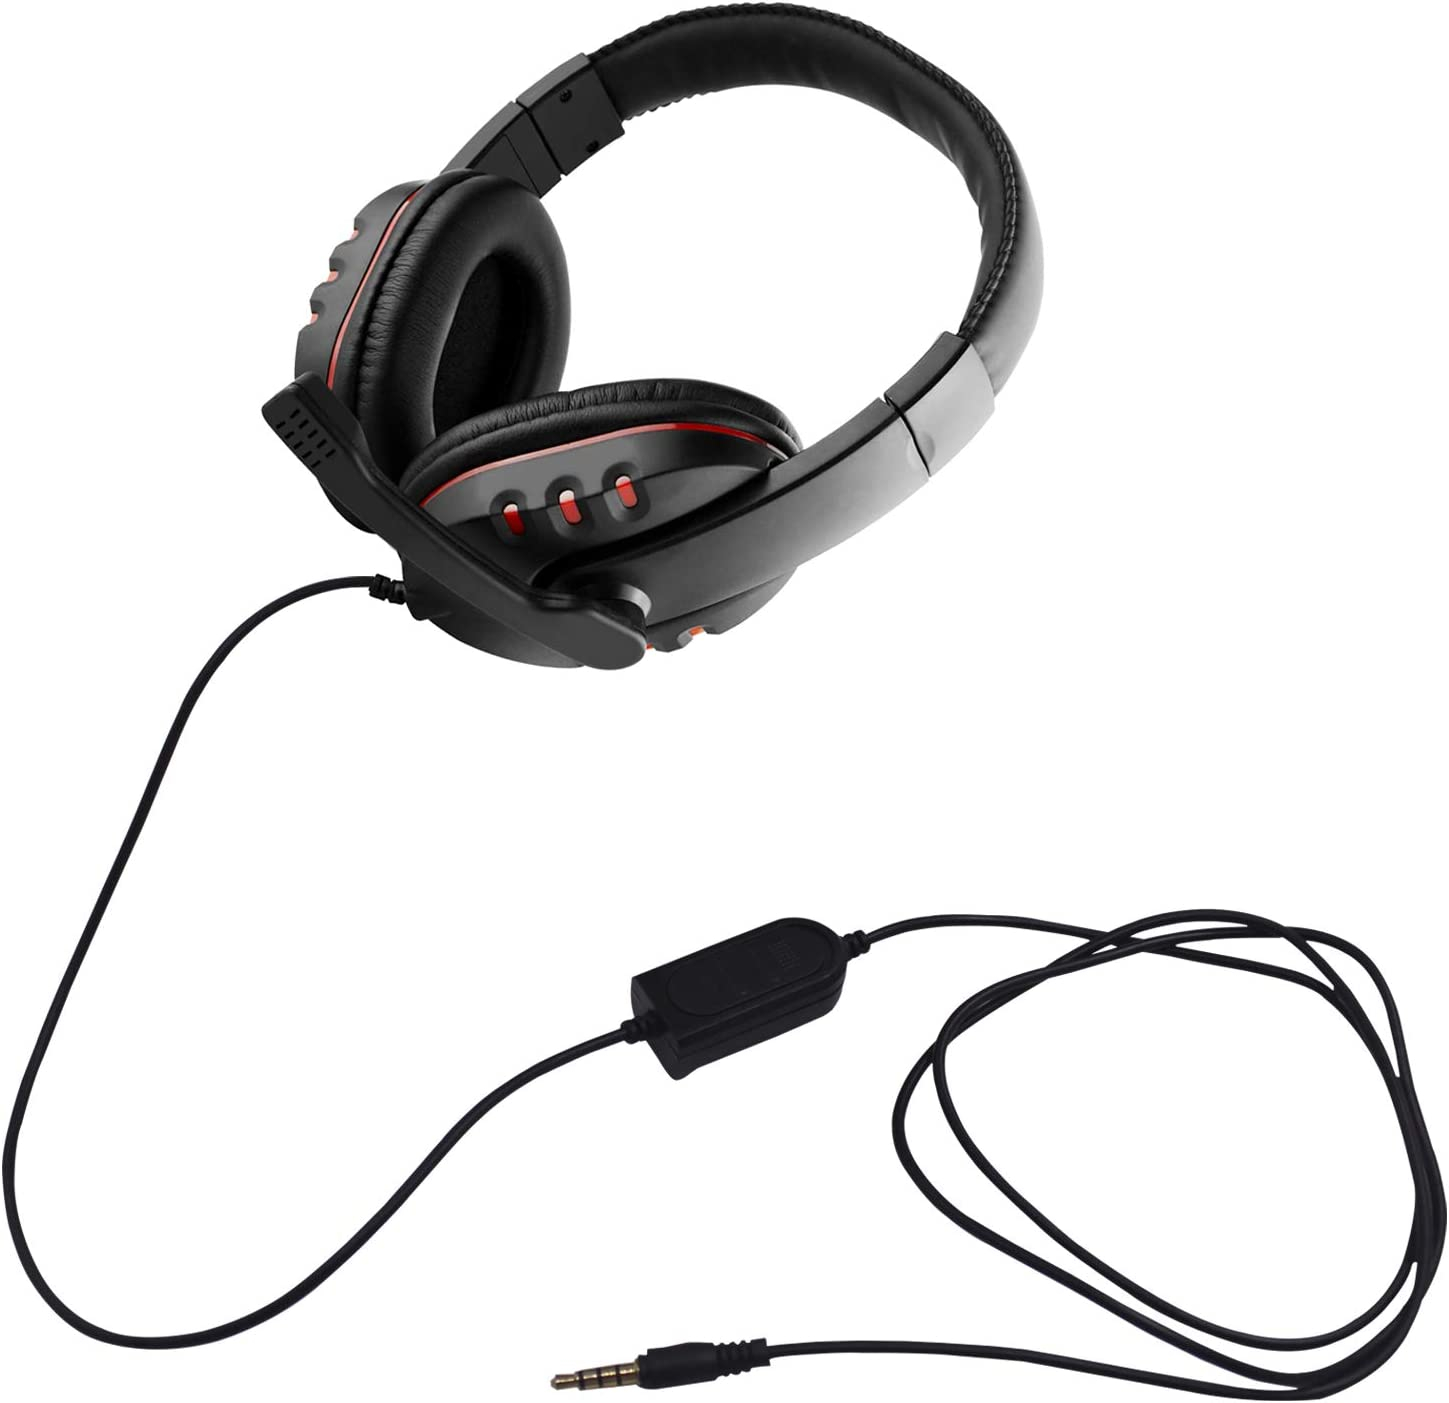 PC Soft Memory Earmuffs Gaming Headset Compatible with Laptop PS4 Red Xbox One Controller SourceTon Noise Isolating Over Ear Headphone with Microphone and Volume Control Black